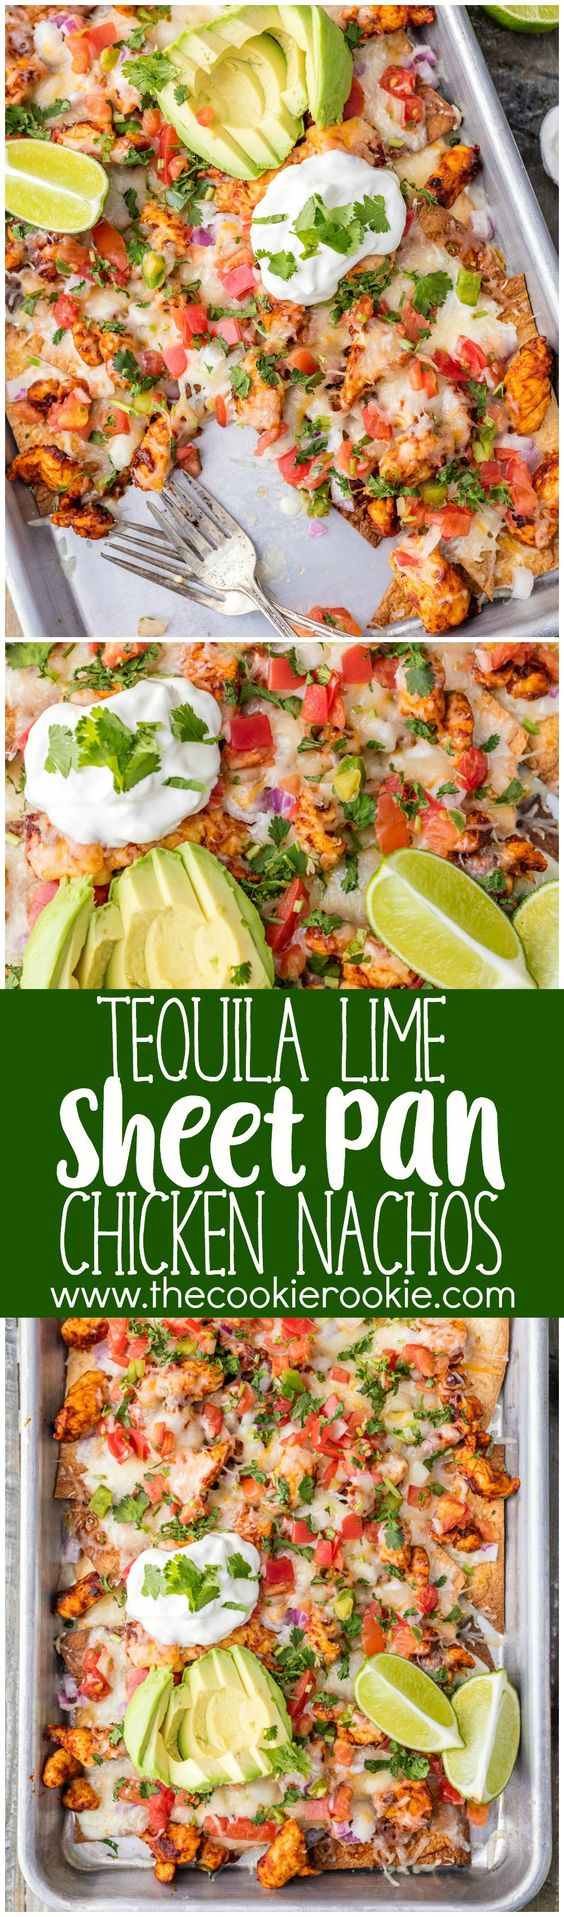 Tequila Lime SHEET PAN Chicken Nachos Recipe via The Cookie Rookie - a great recipe for feeding a crowd with delicious chicken nachos! Easy, delicious, and perfect for any occasion. Load these up with your favorite toppings and you're in business! #sheetpansuppers #sheetpanrecipes #sheetpandinners #onepanmeals #healthyrecipes #mealprep #easyrecipes #healthydinners #healthysuppers #healthylunches #simplefamilymeals #simplefamilyrecipes #simplerecipes